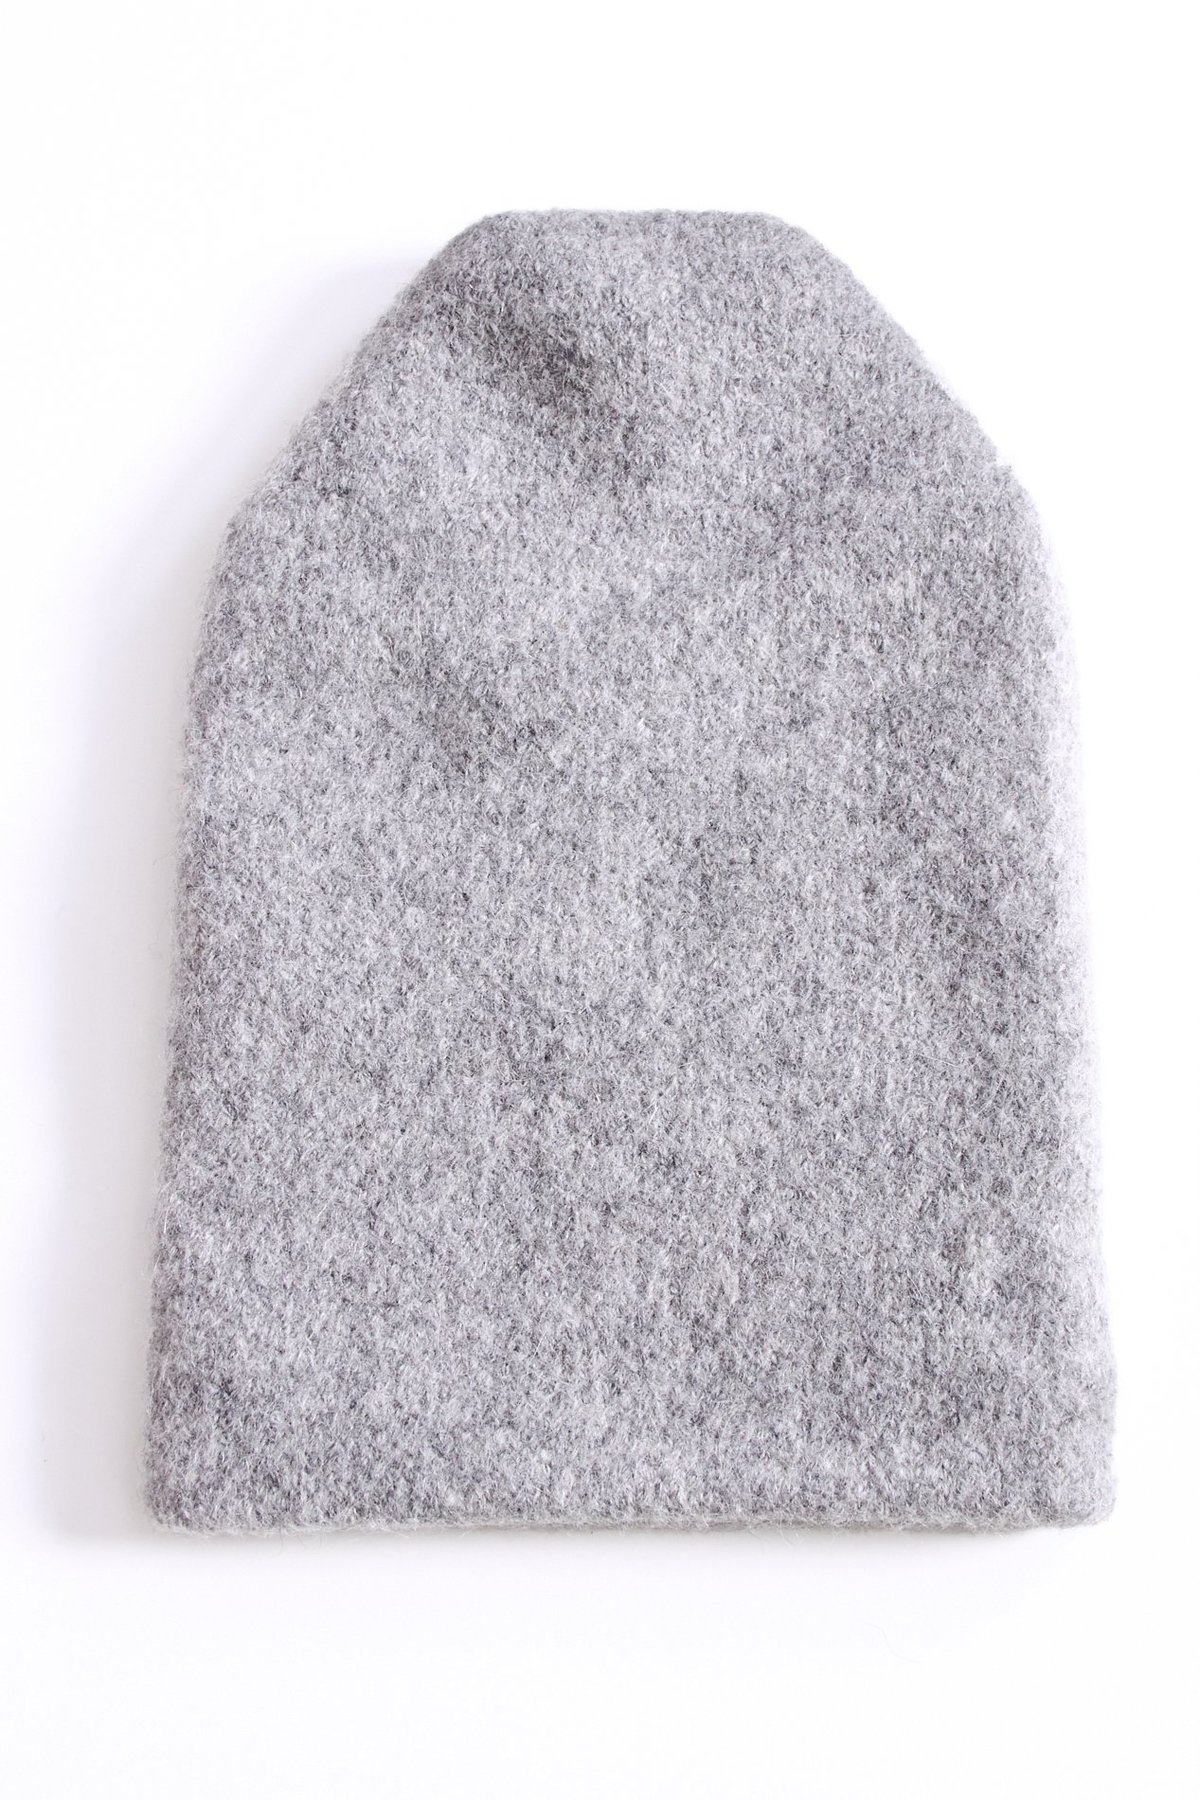 9e51caf0866 Lauren Manoogian Carpenter Hat - Felt